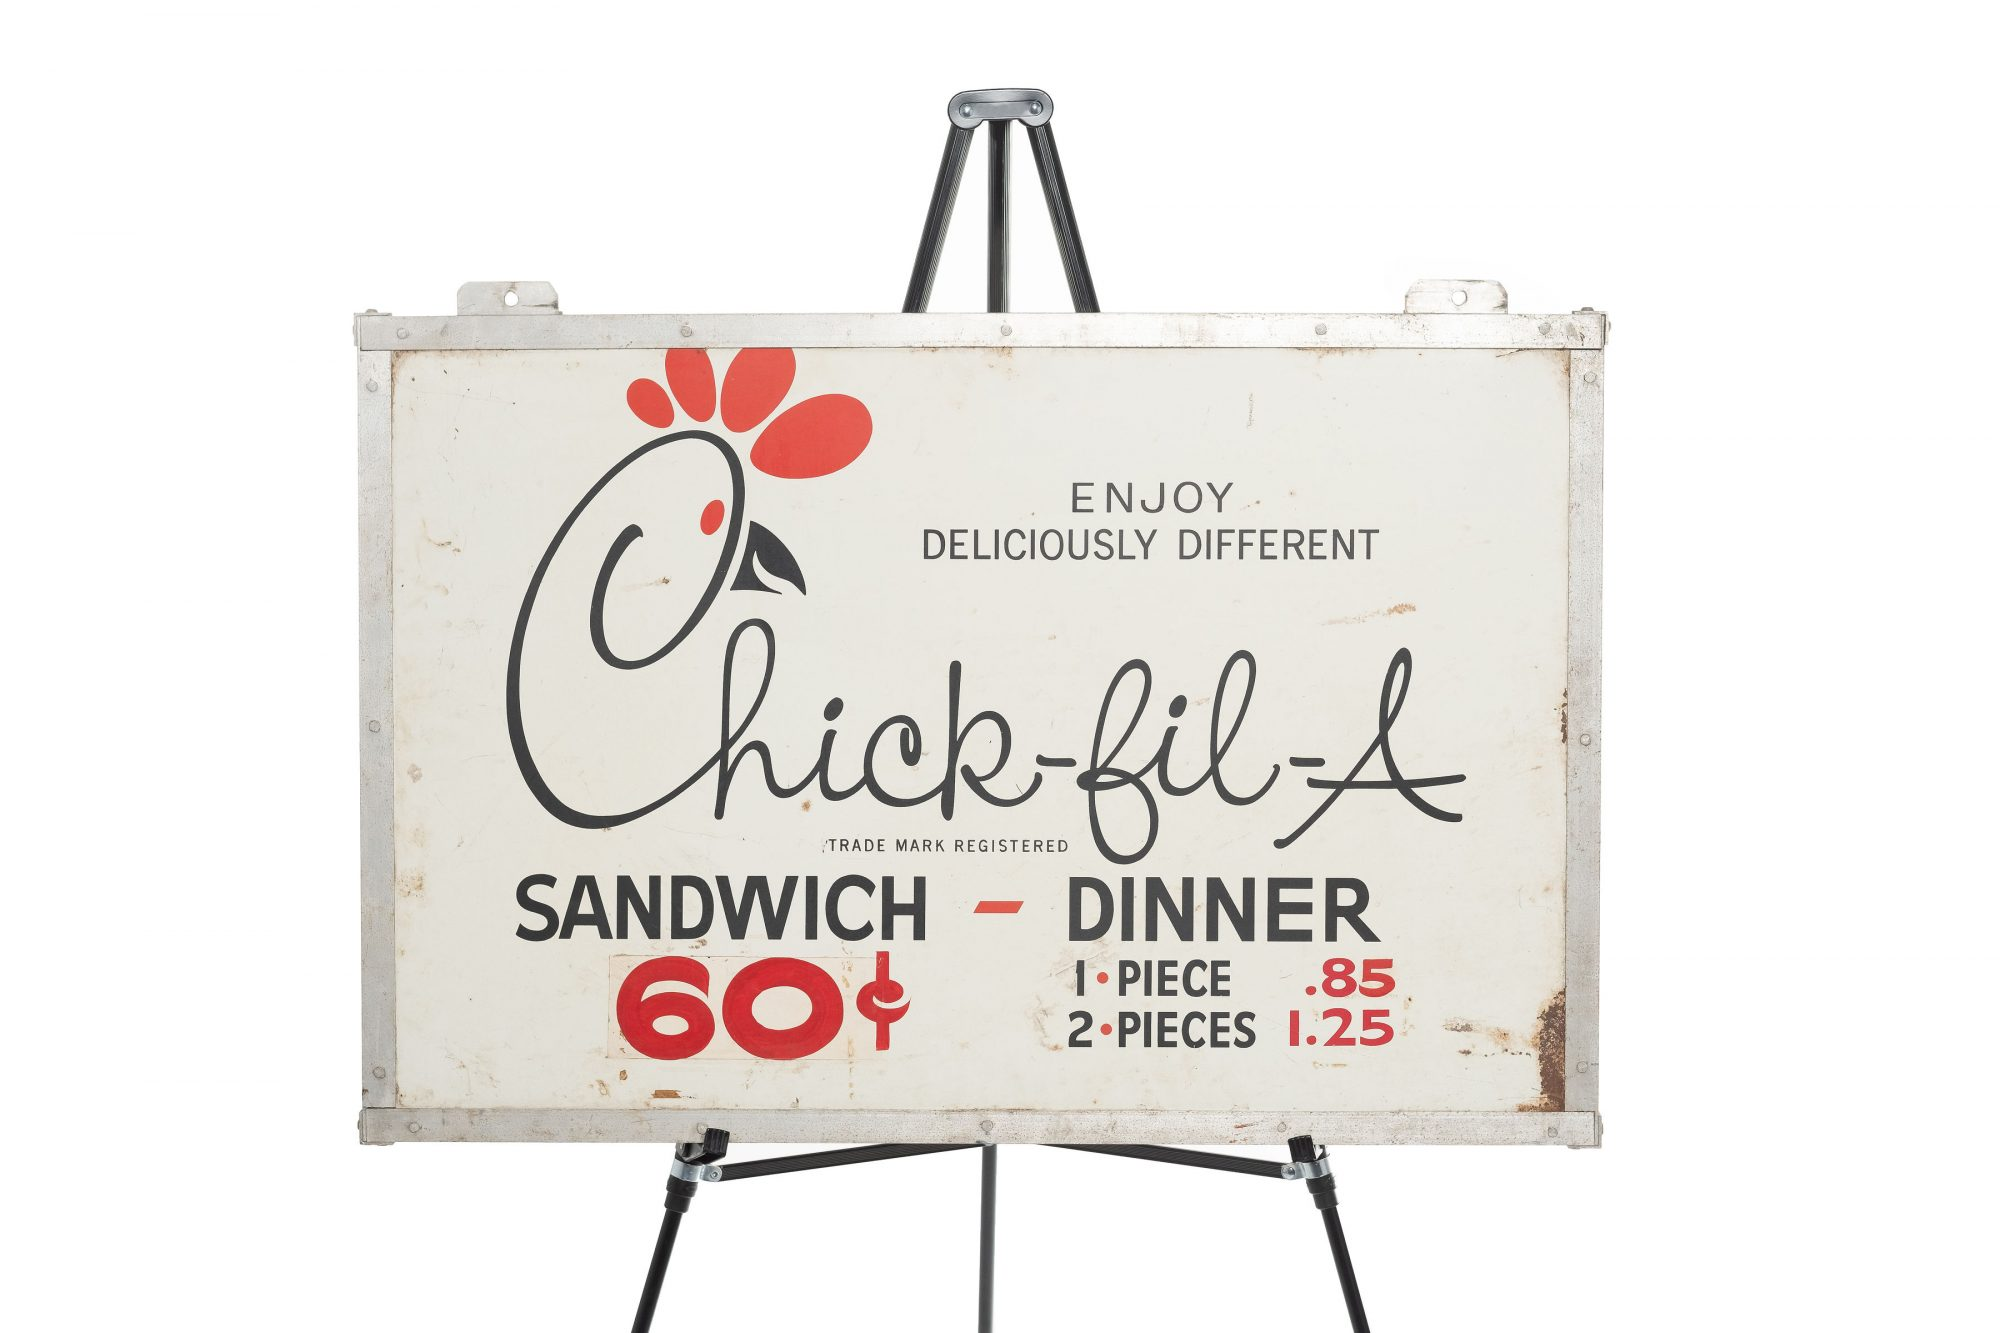 Chick-fil-a Archive Sign